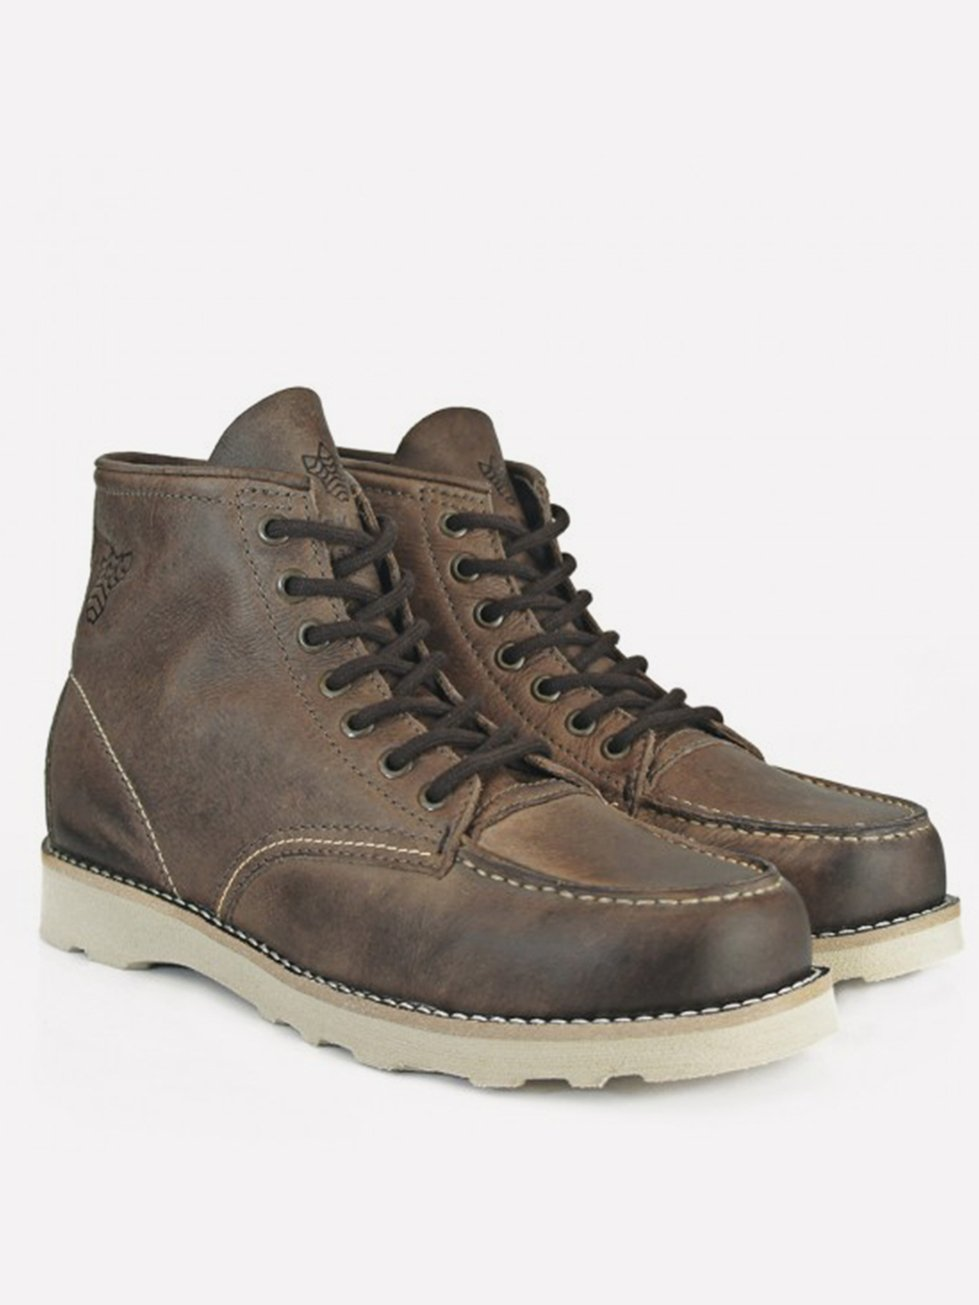 Foto do BOTA BLACK BOOTS MOC TOE GRAXO CAFE